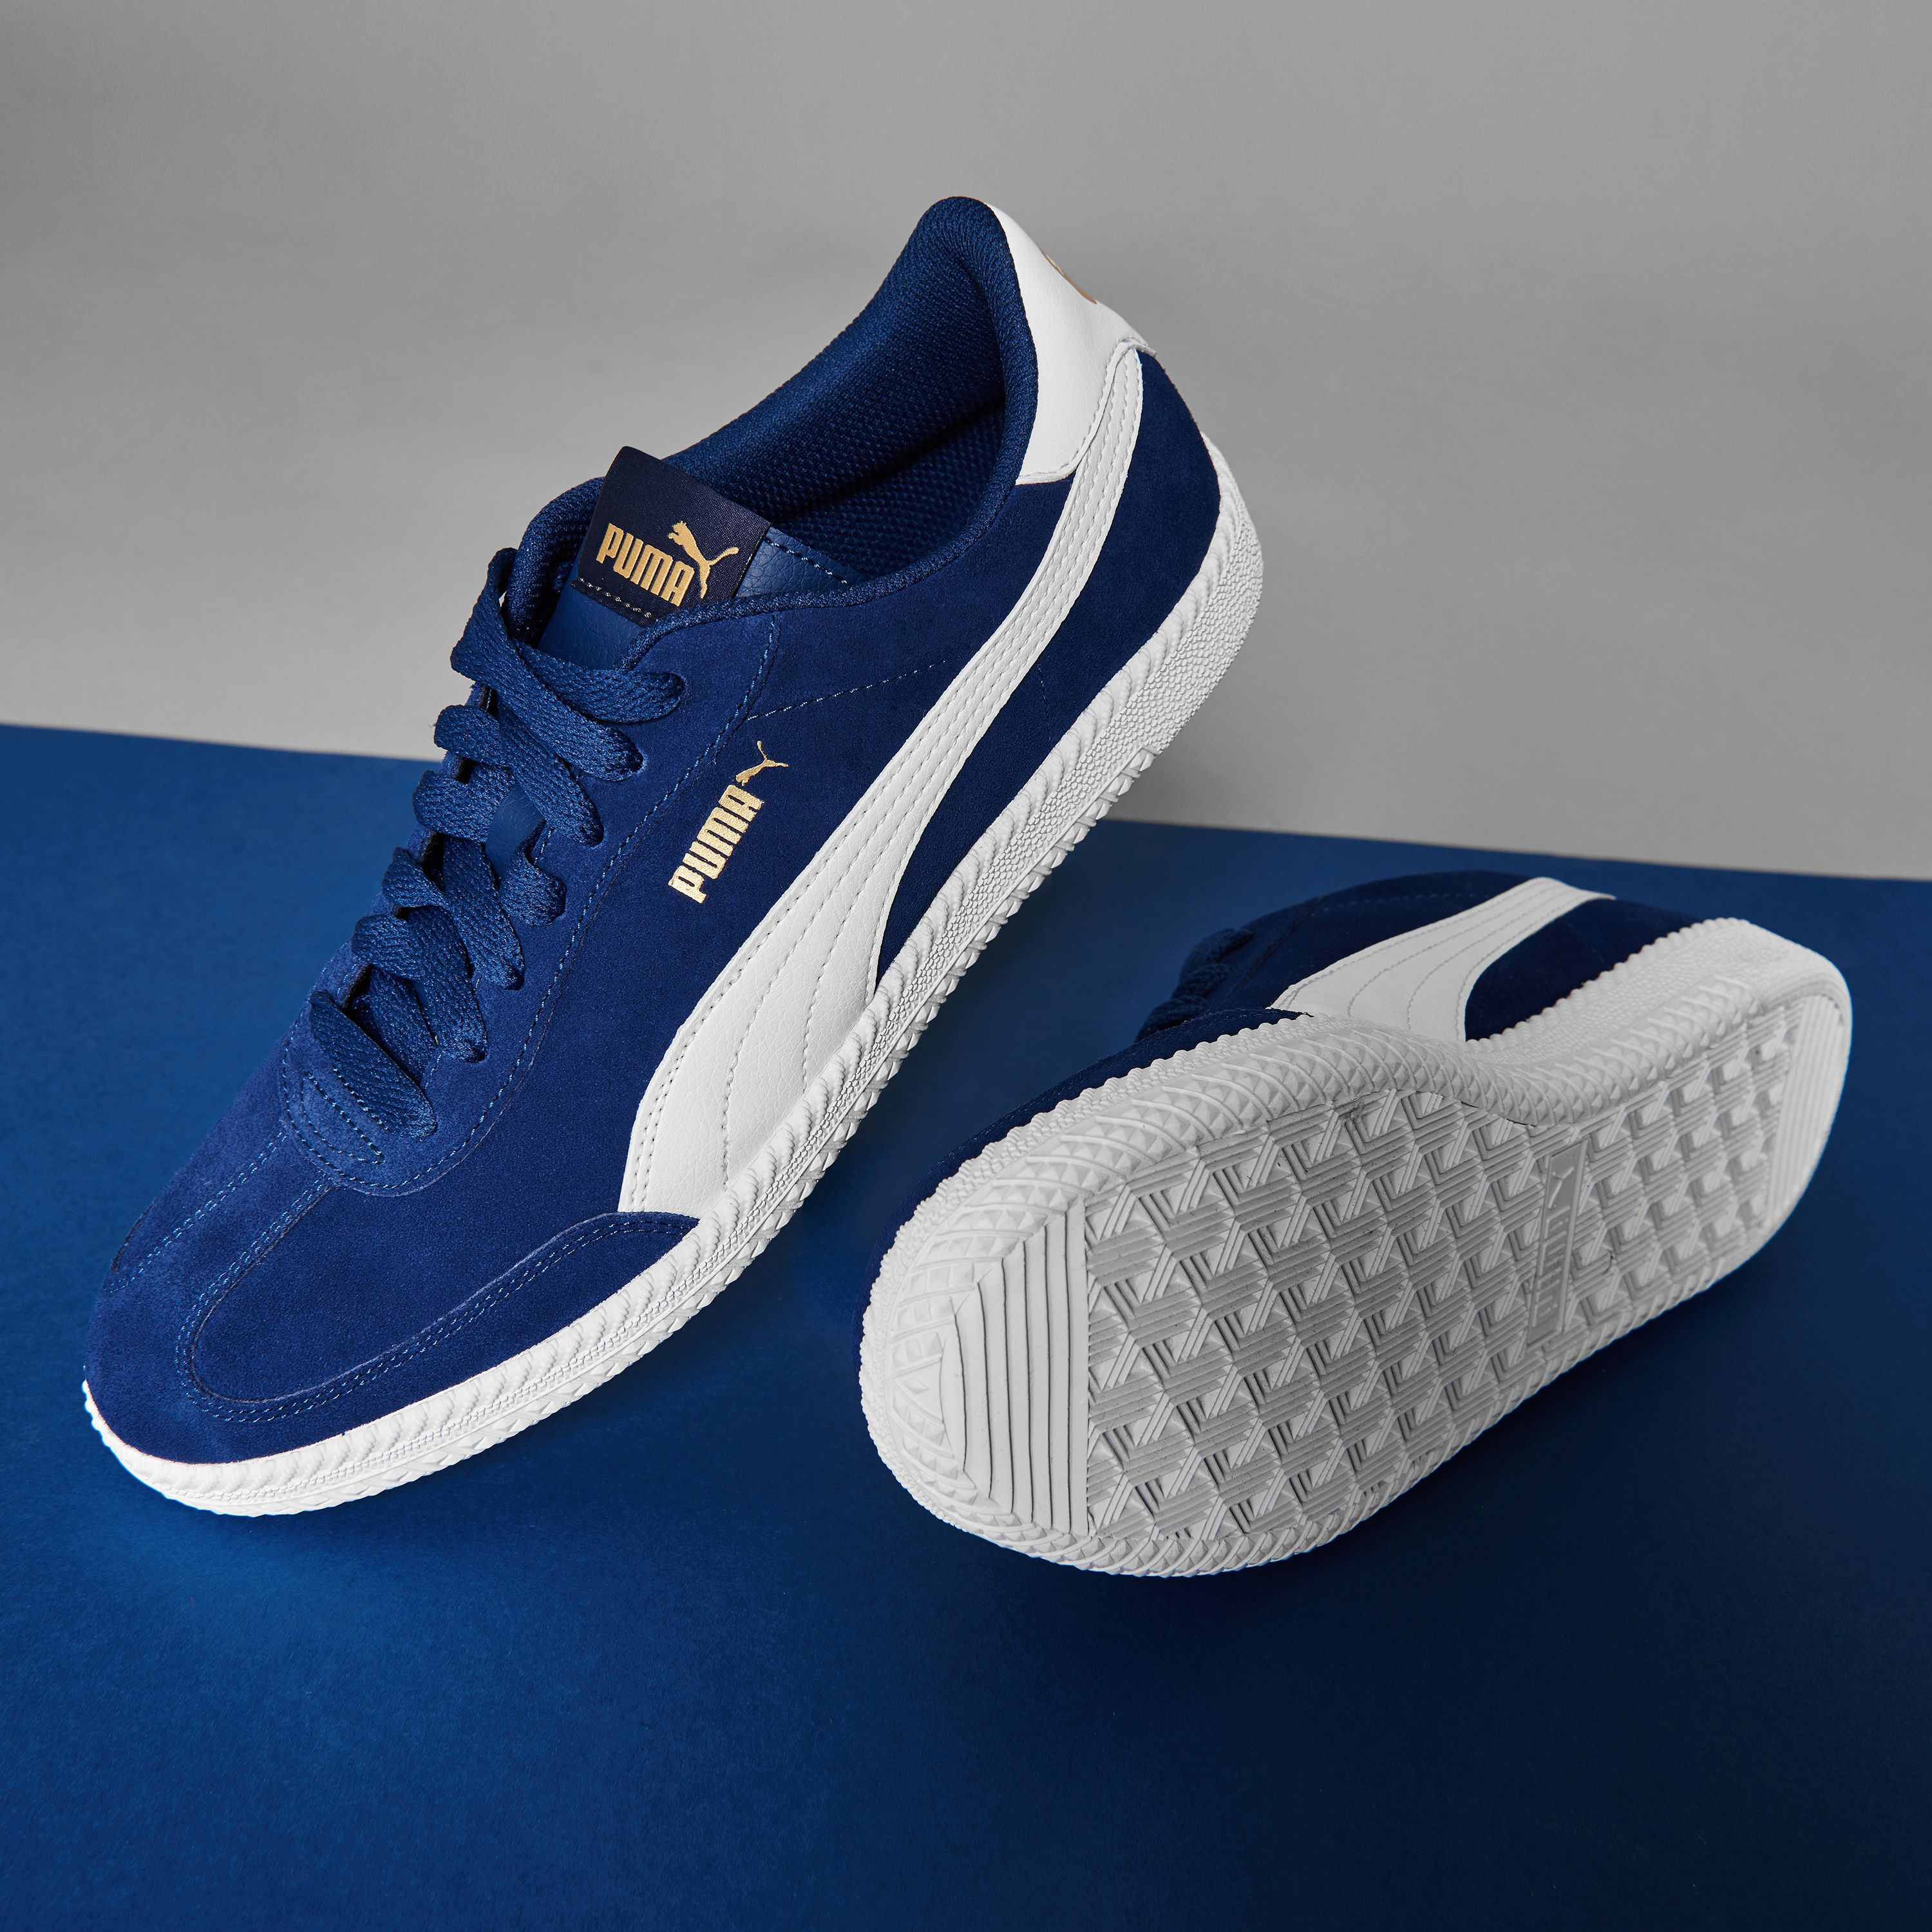 dec5e5a148 The Puma Astro Cup trainers | Shoes | Latest trainers, Shoes, Sneakers